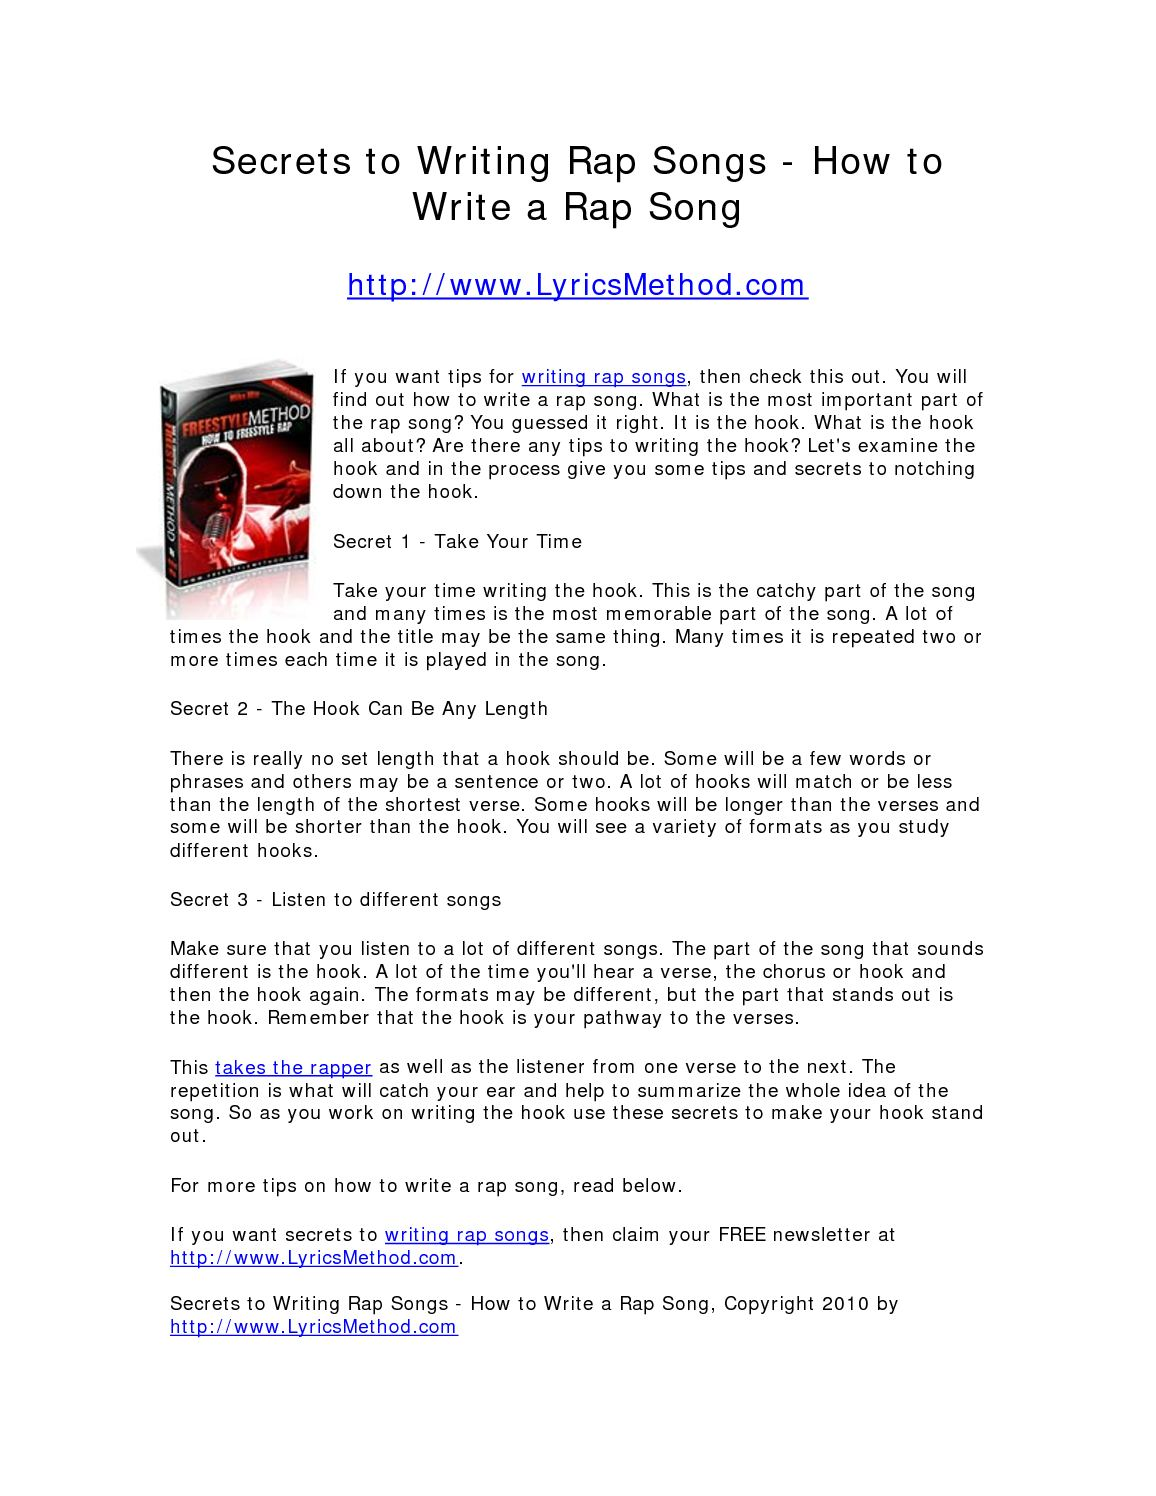 Calaméo - Secrets to Writing Rap Songs - How to Write a Rap Song